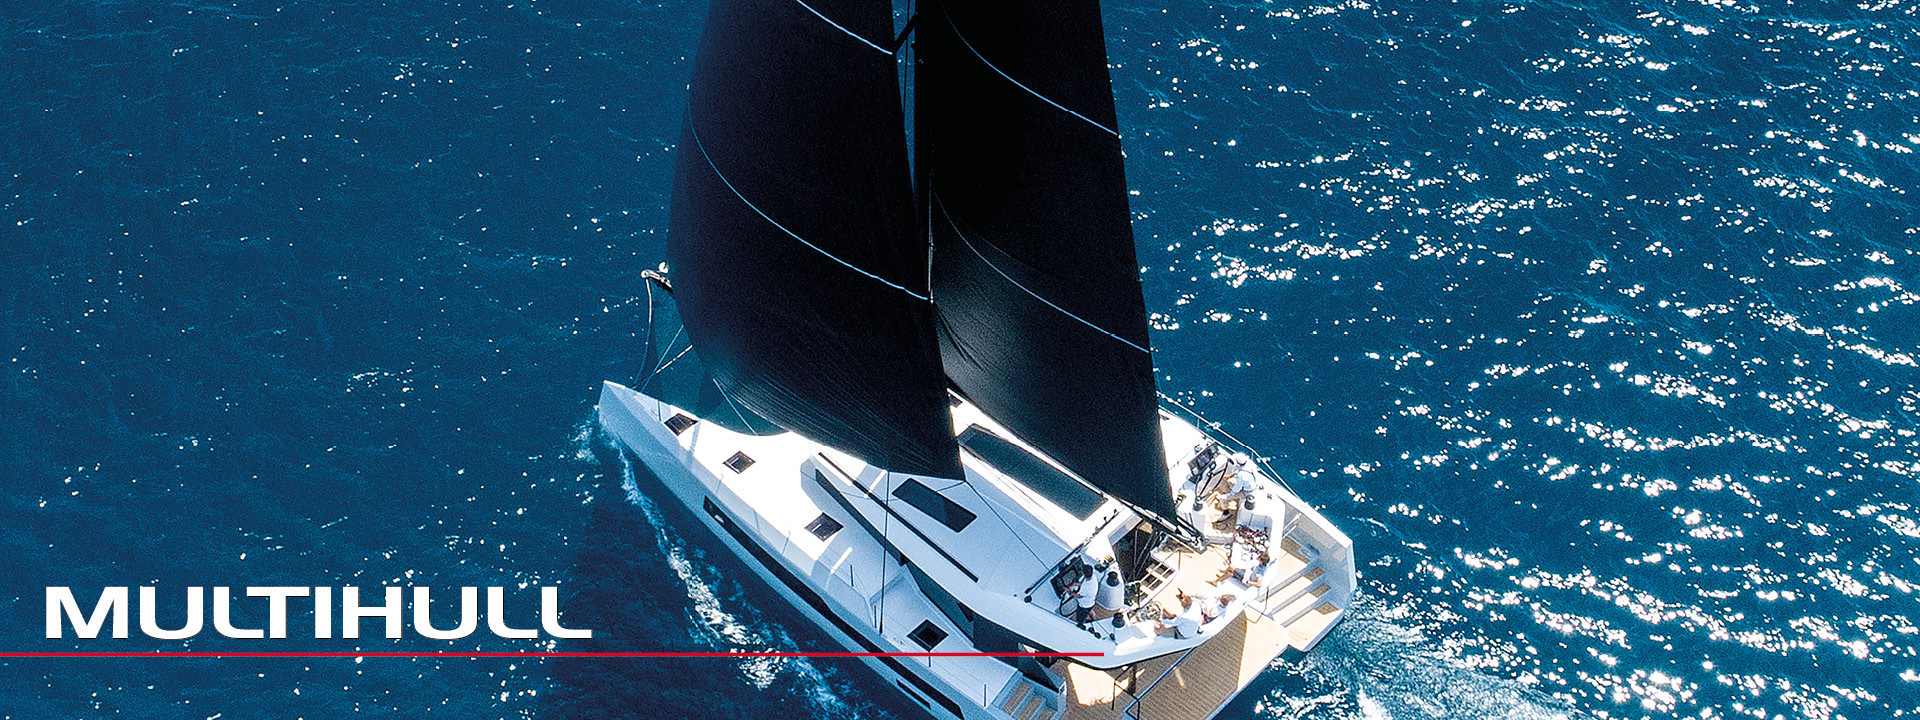 Multihulls sails